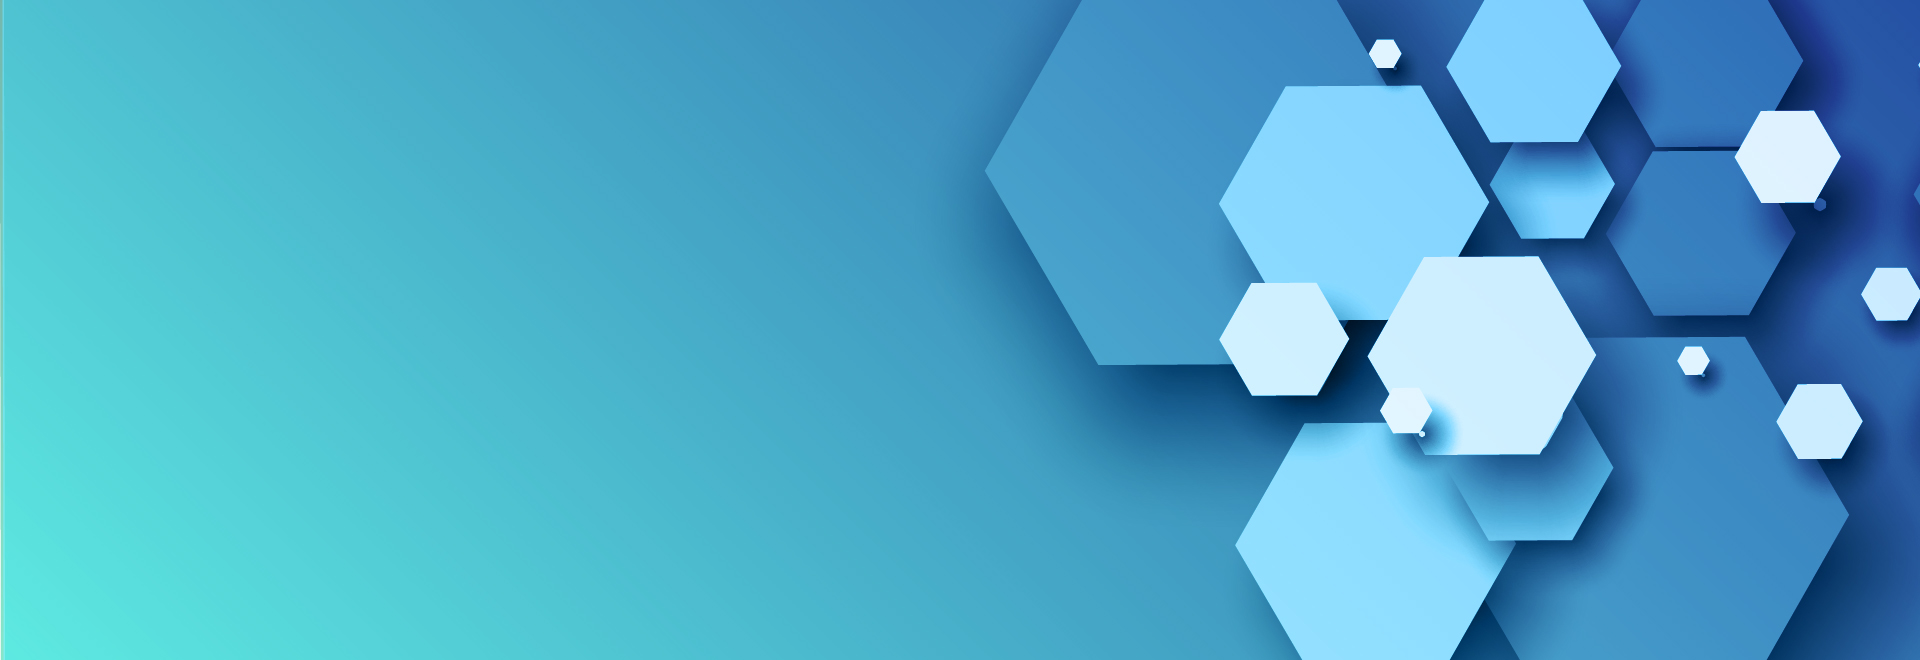 blue blog banner with hexagonal design on the right